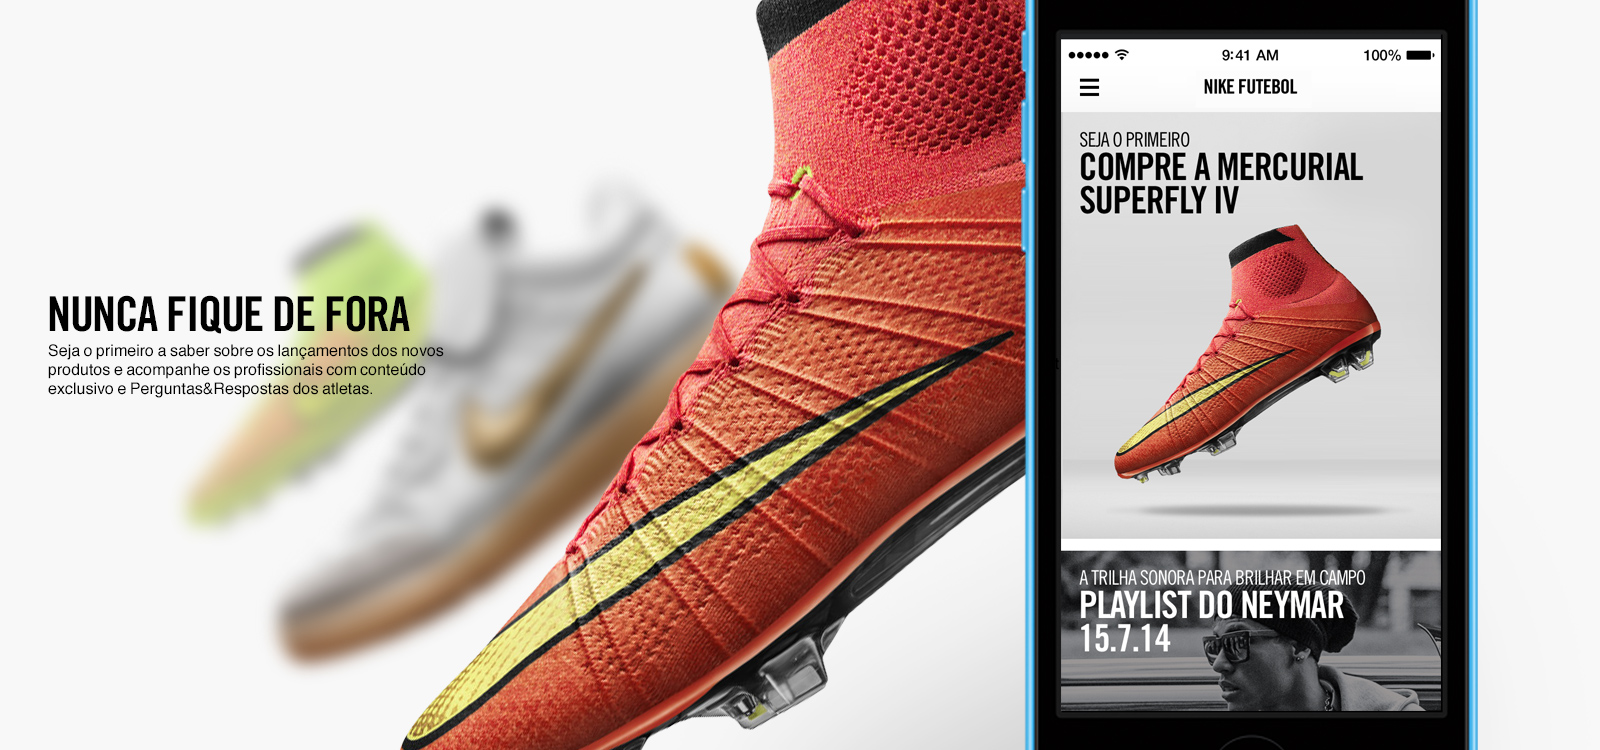 App Nike Futebol para iPhones/iPods touch